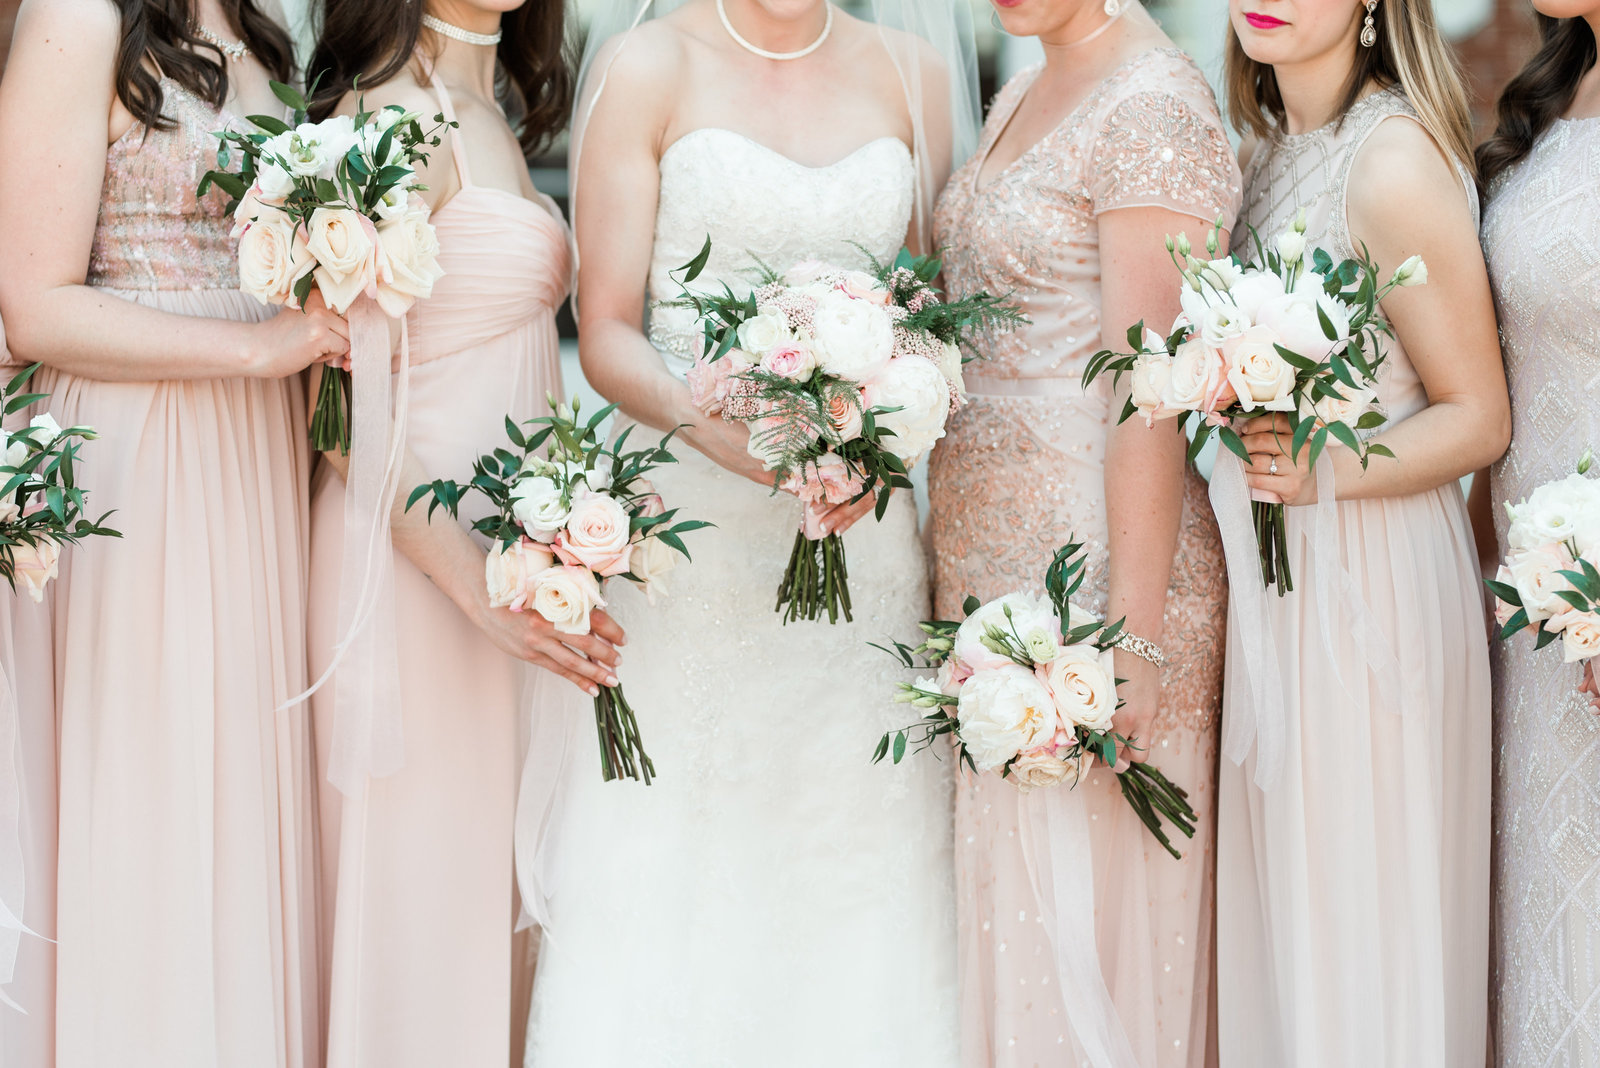 blush-bridesmaids-dresses-peony-bouquets-virginia-wedding107